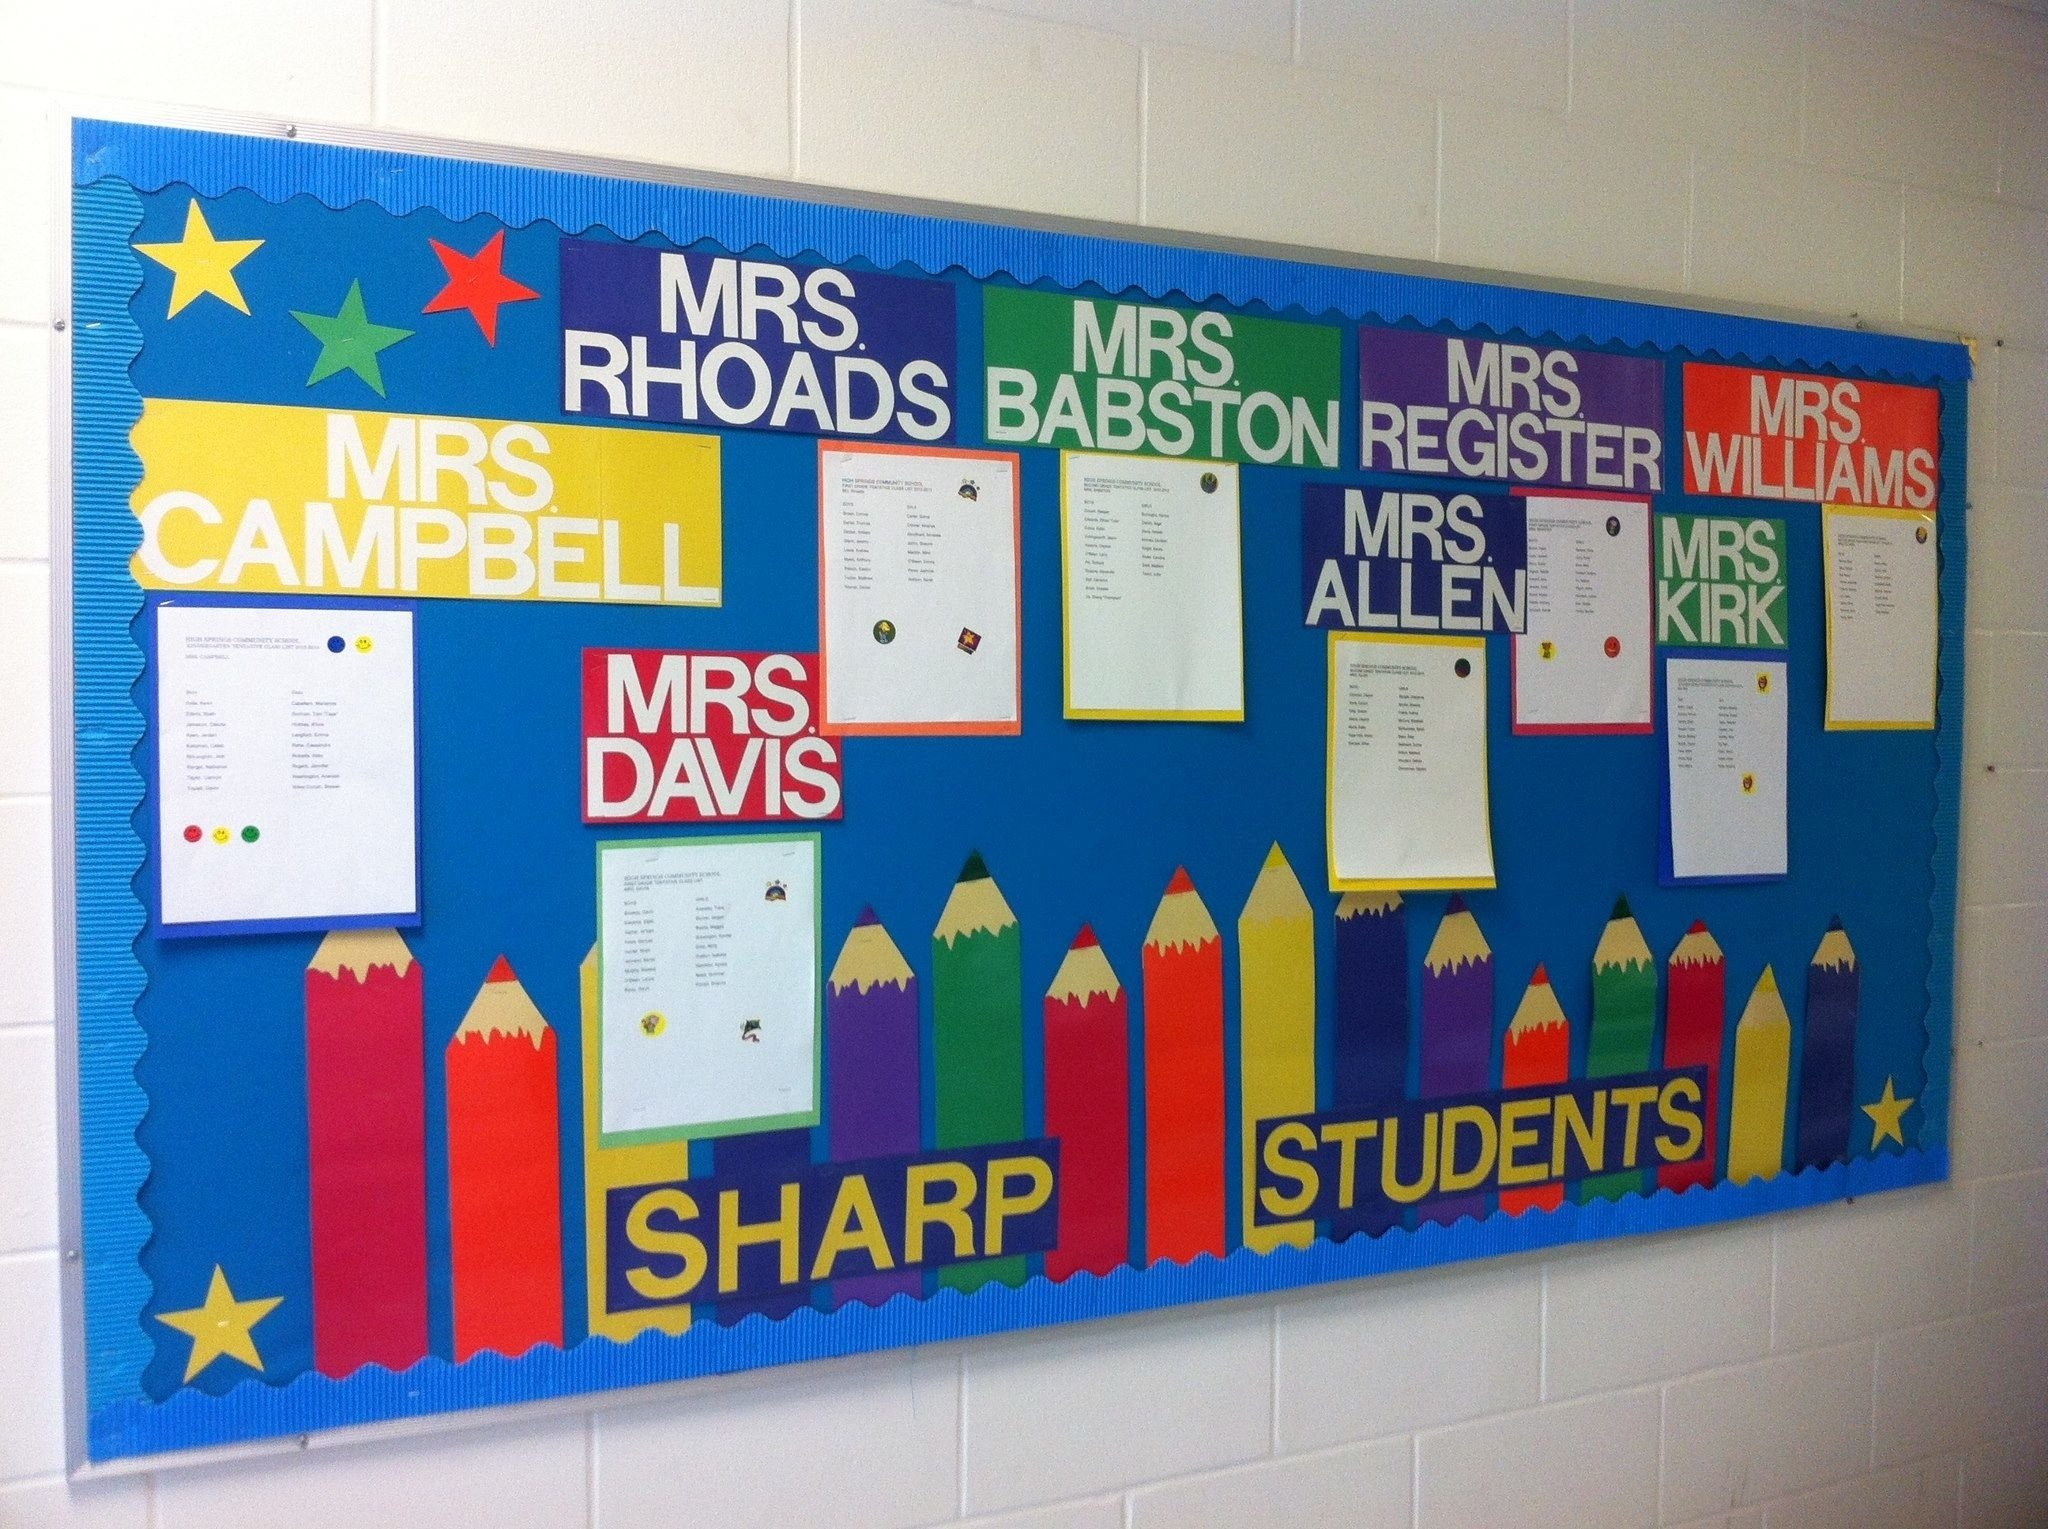 10 Nice Student Of The Month Ideas sharp students first day of school welcome board or student of 1 2020